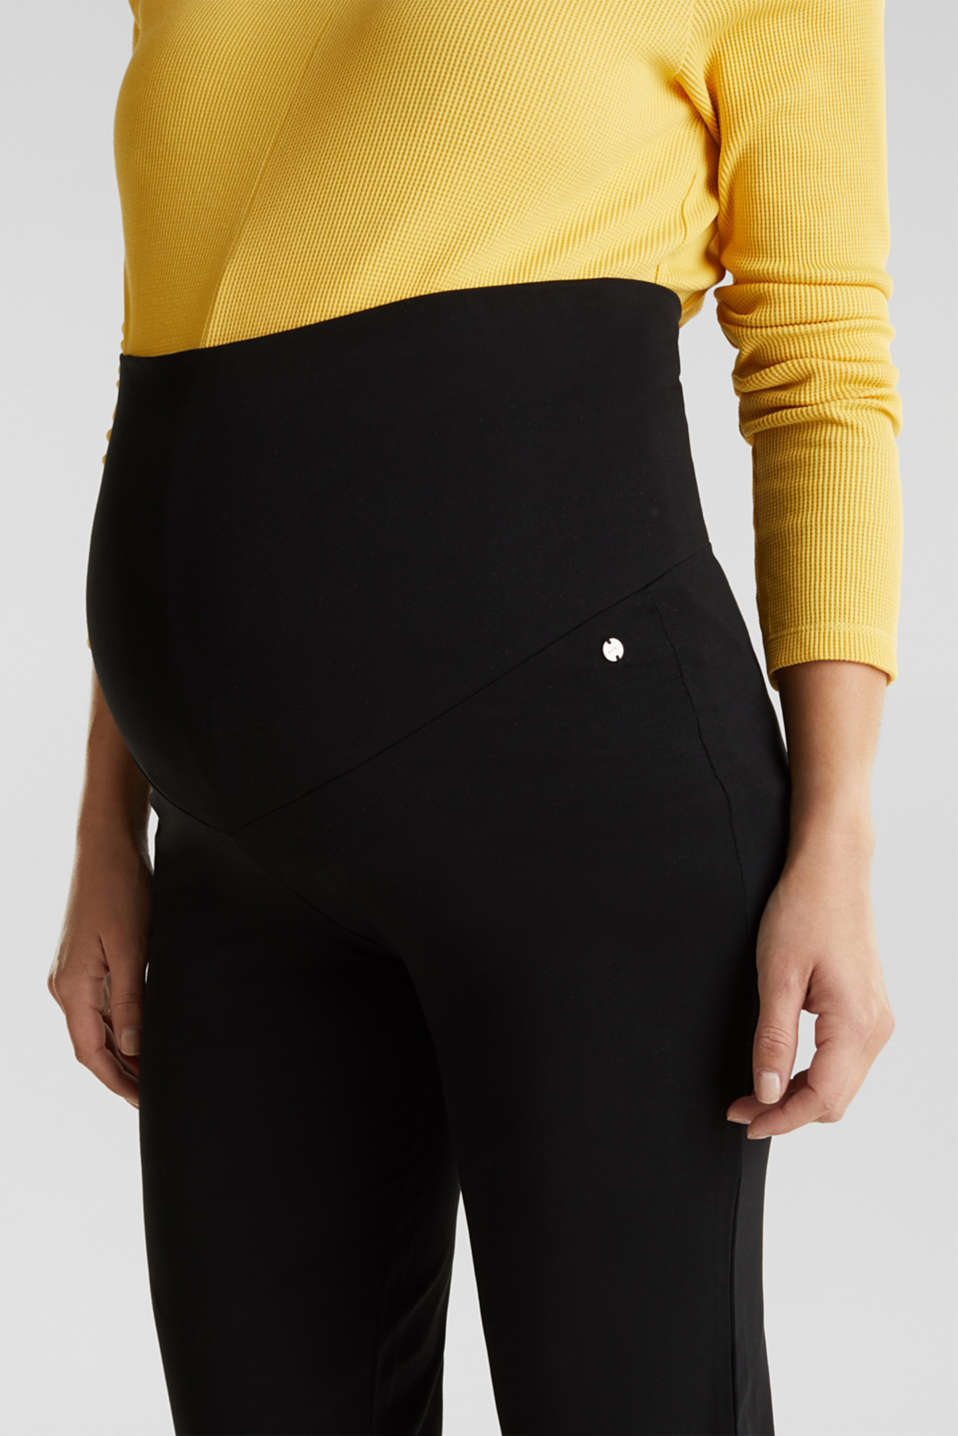 Jersey trousers with an over-bump waistband, LCBLACK, detail image number 1